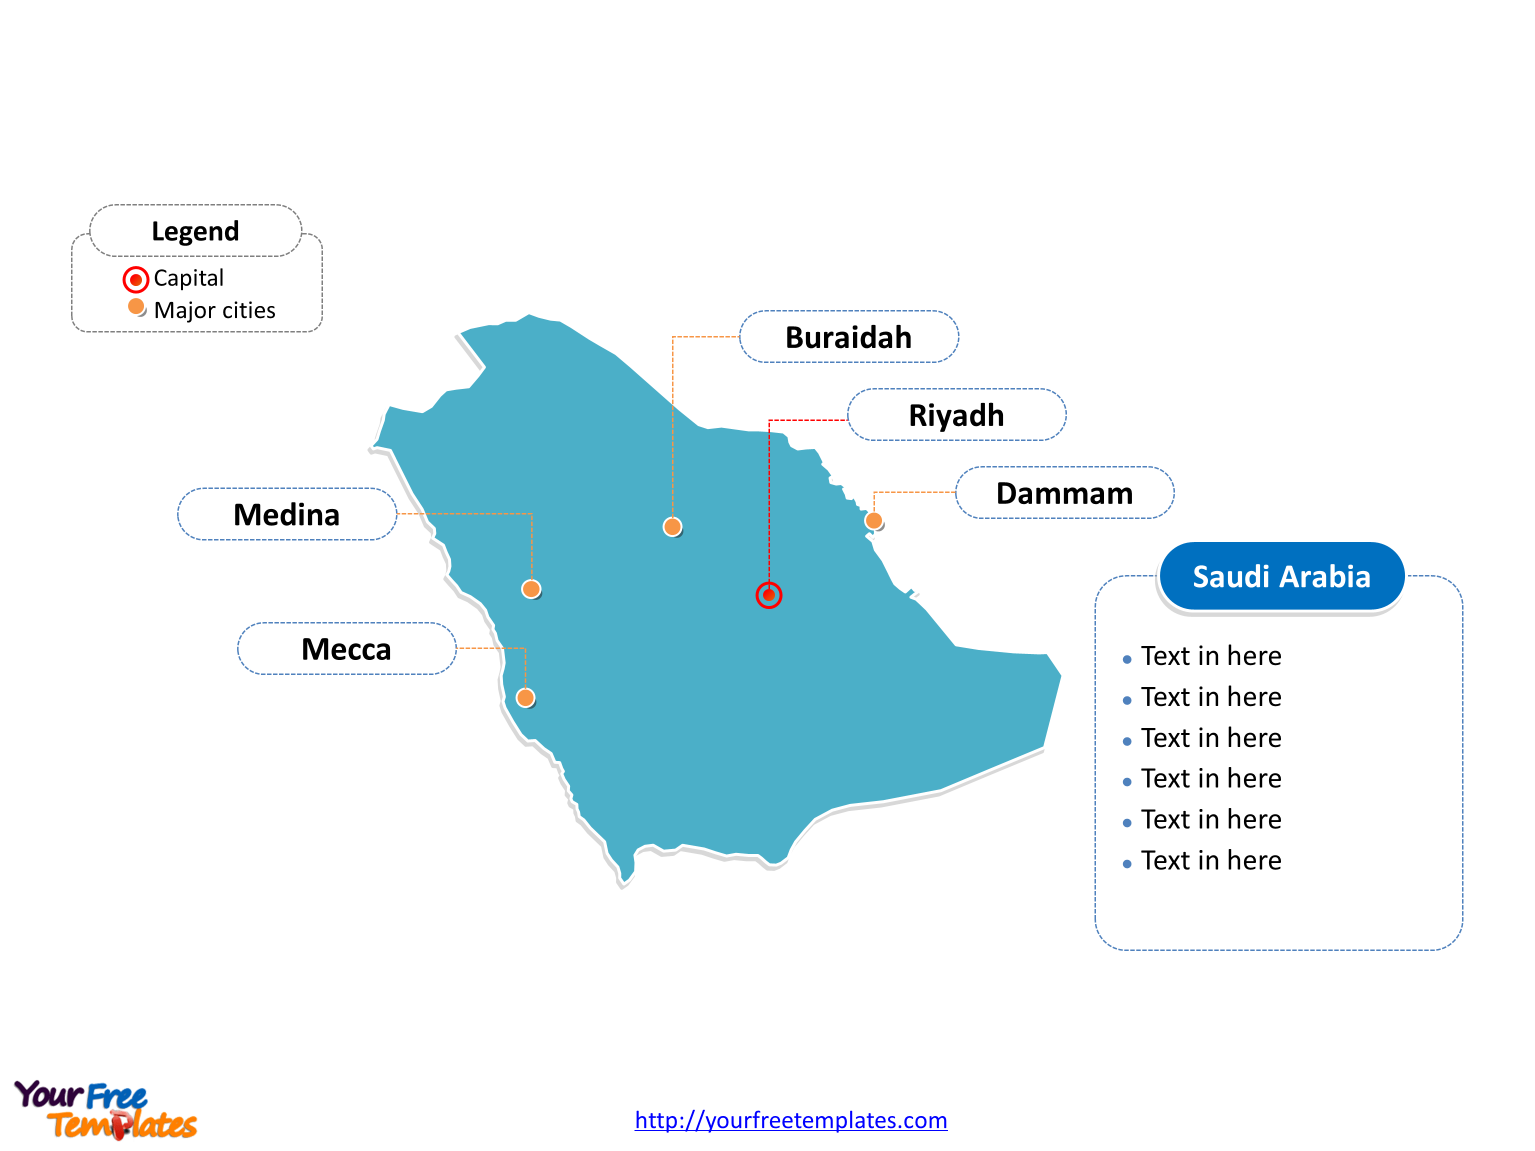 Saudi Arabia Outline map labeled with cities